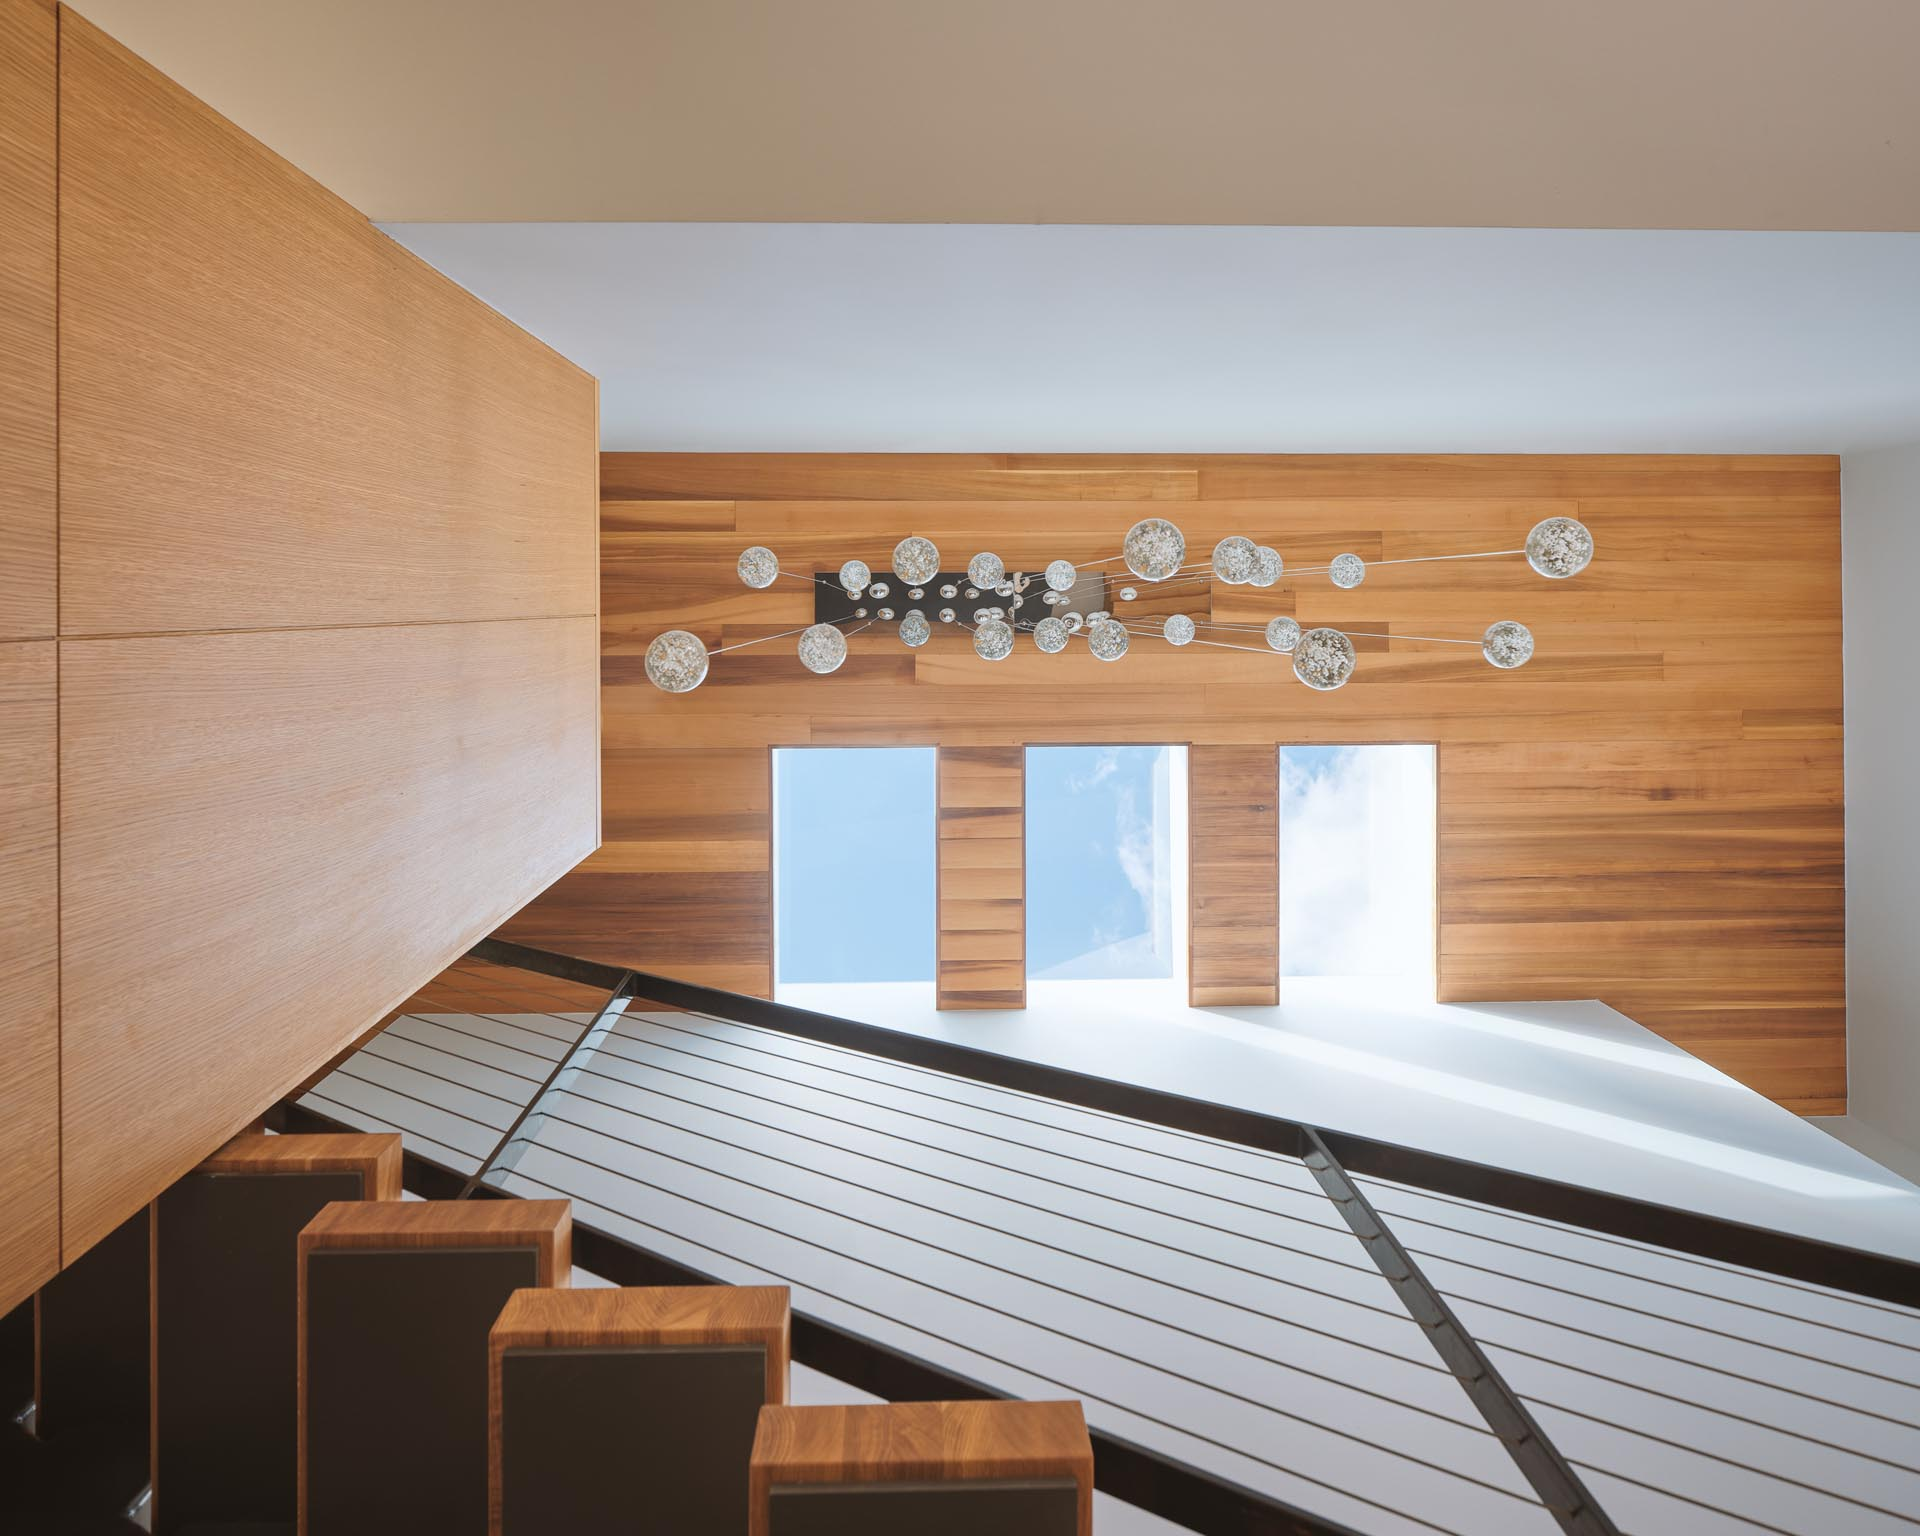 A modern wood ceiling with three skylights.